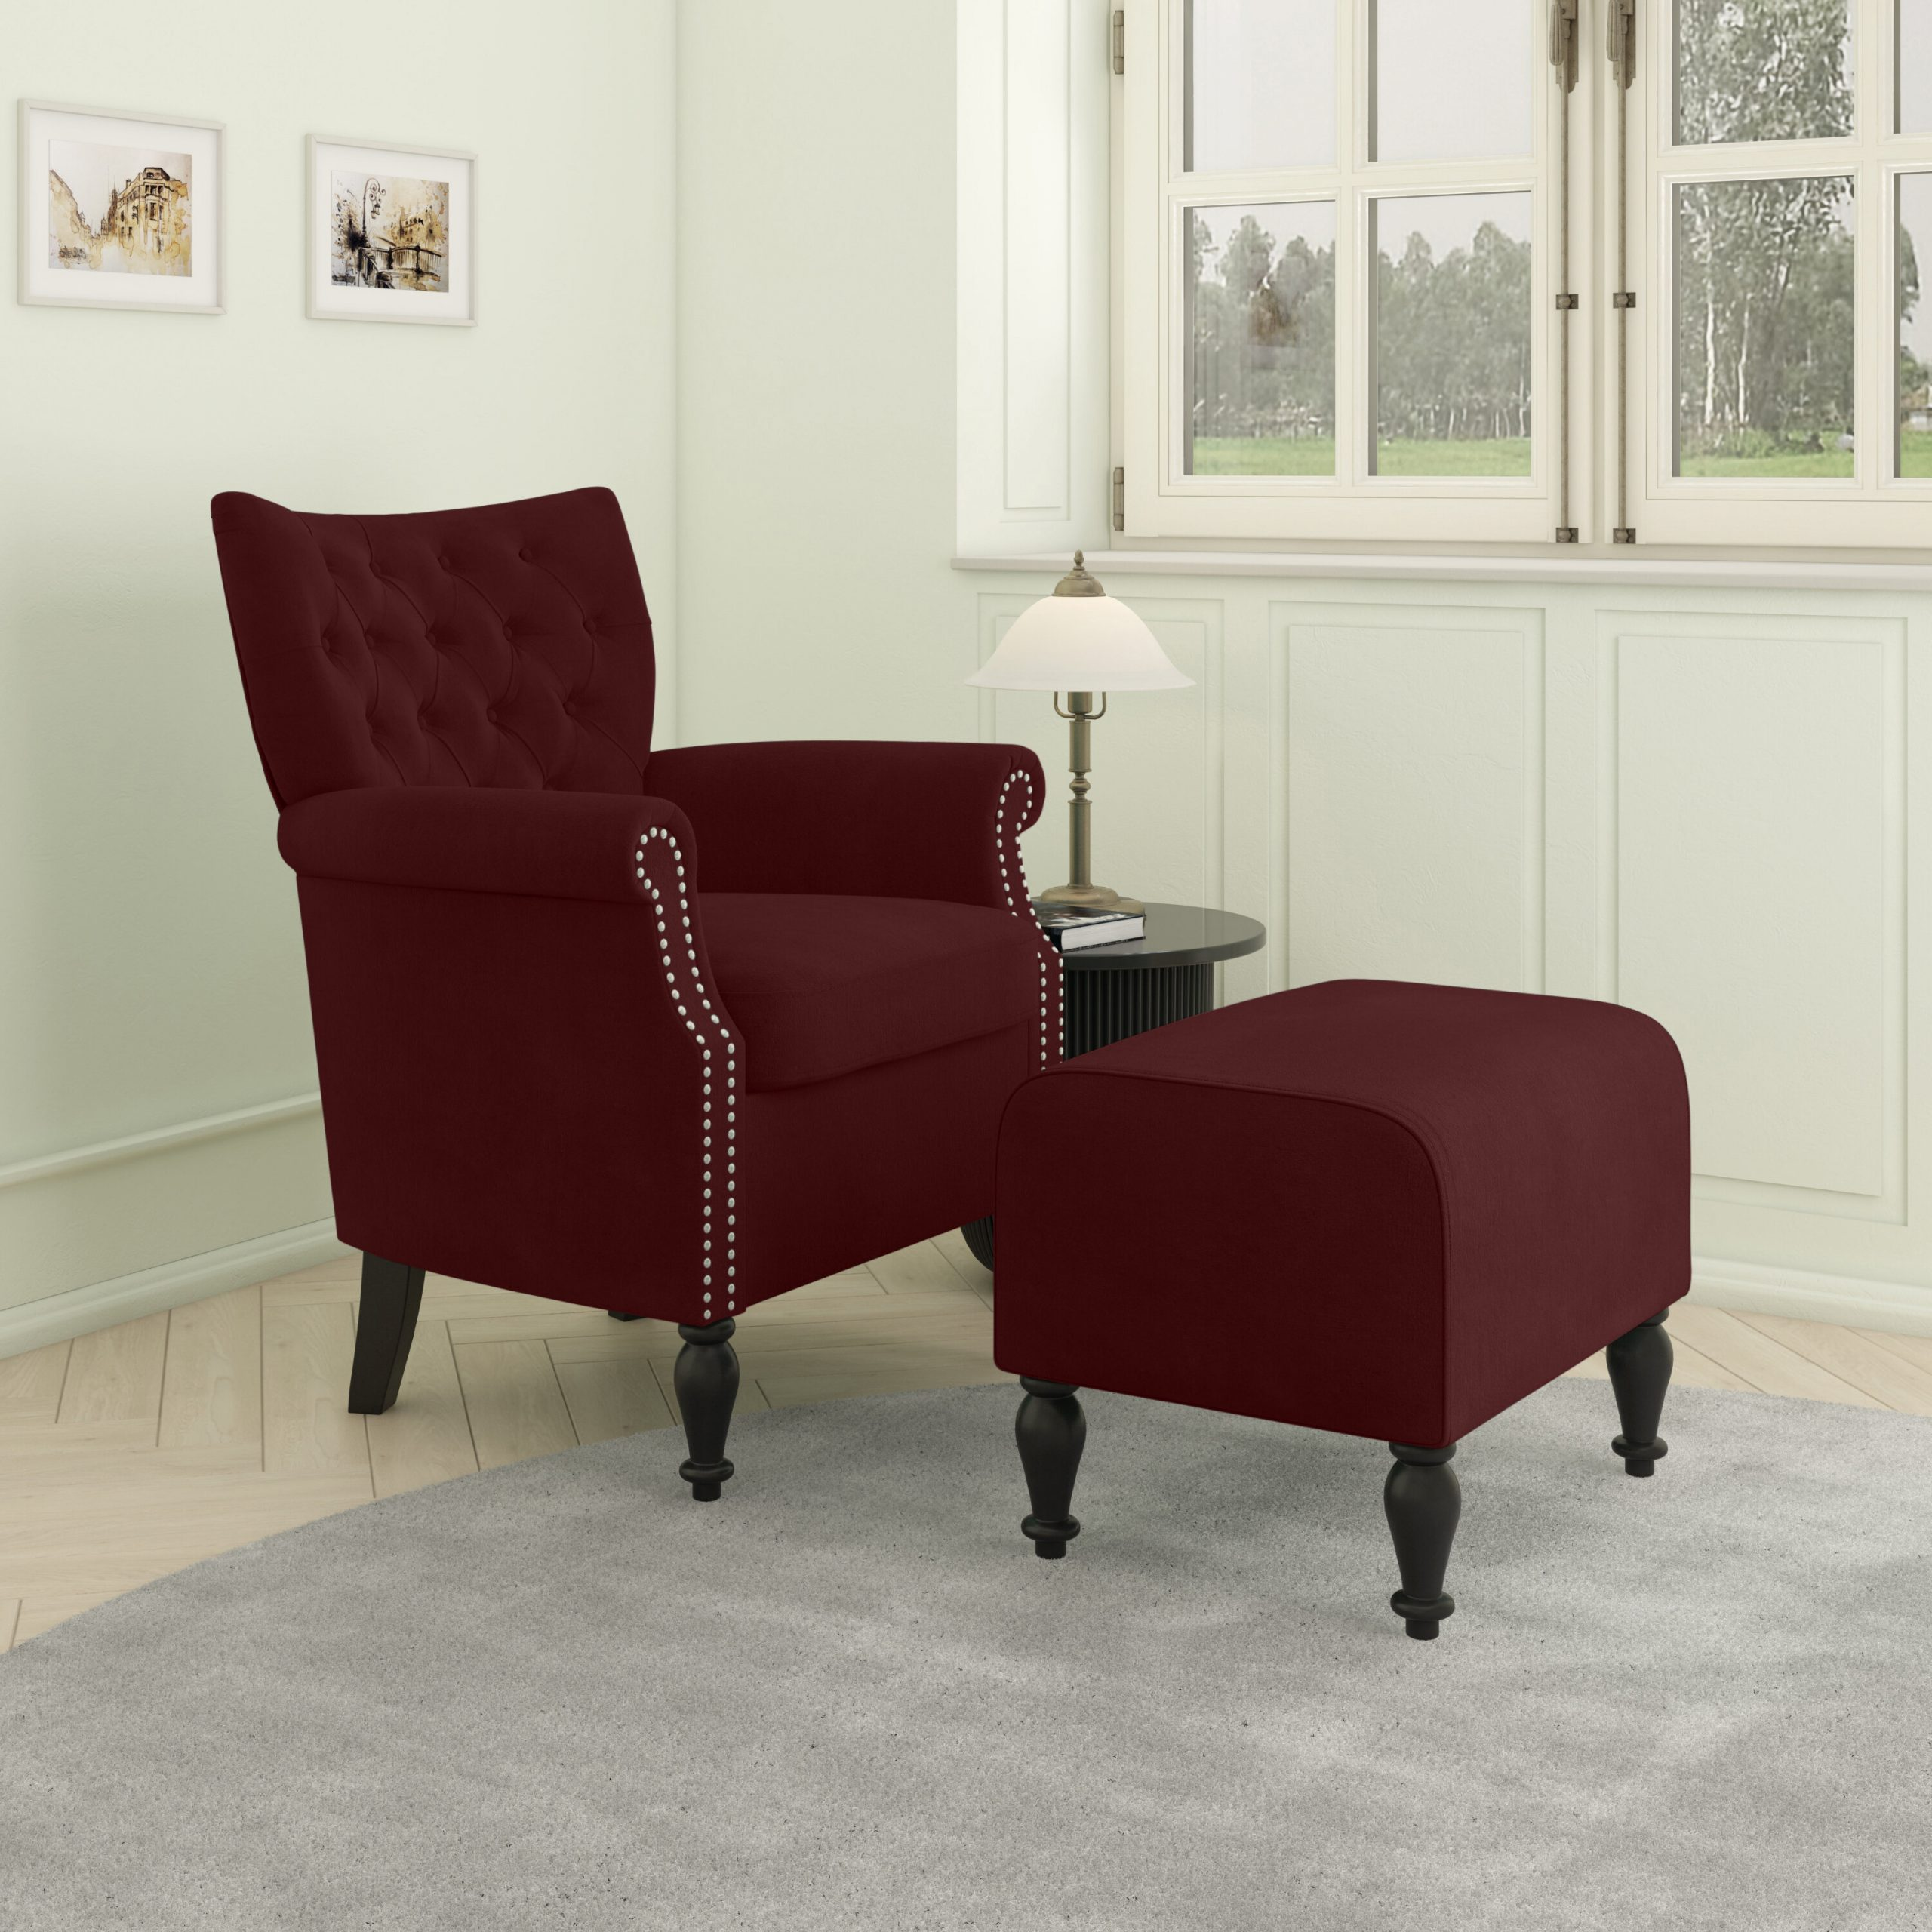 Brassfield Armchair And Ottoman Throughout Brames Barrel Chair And Ottoman Sets (View 4 of 15)